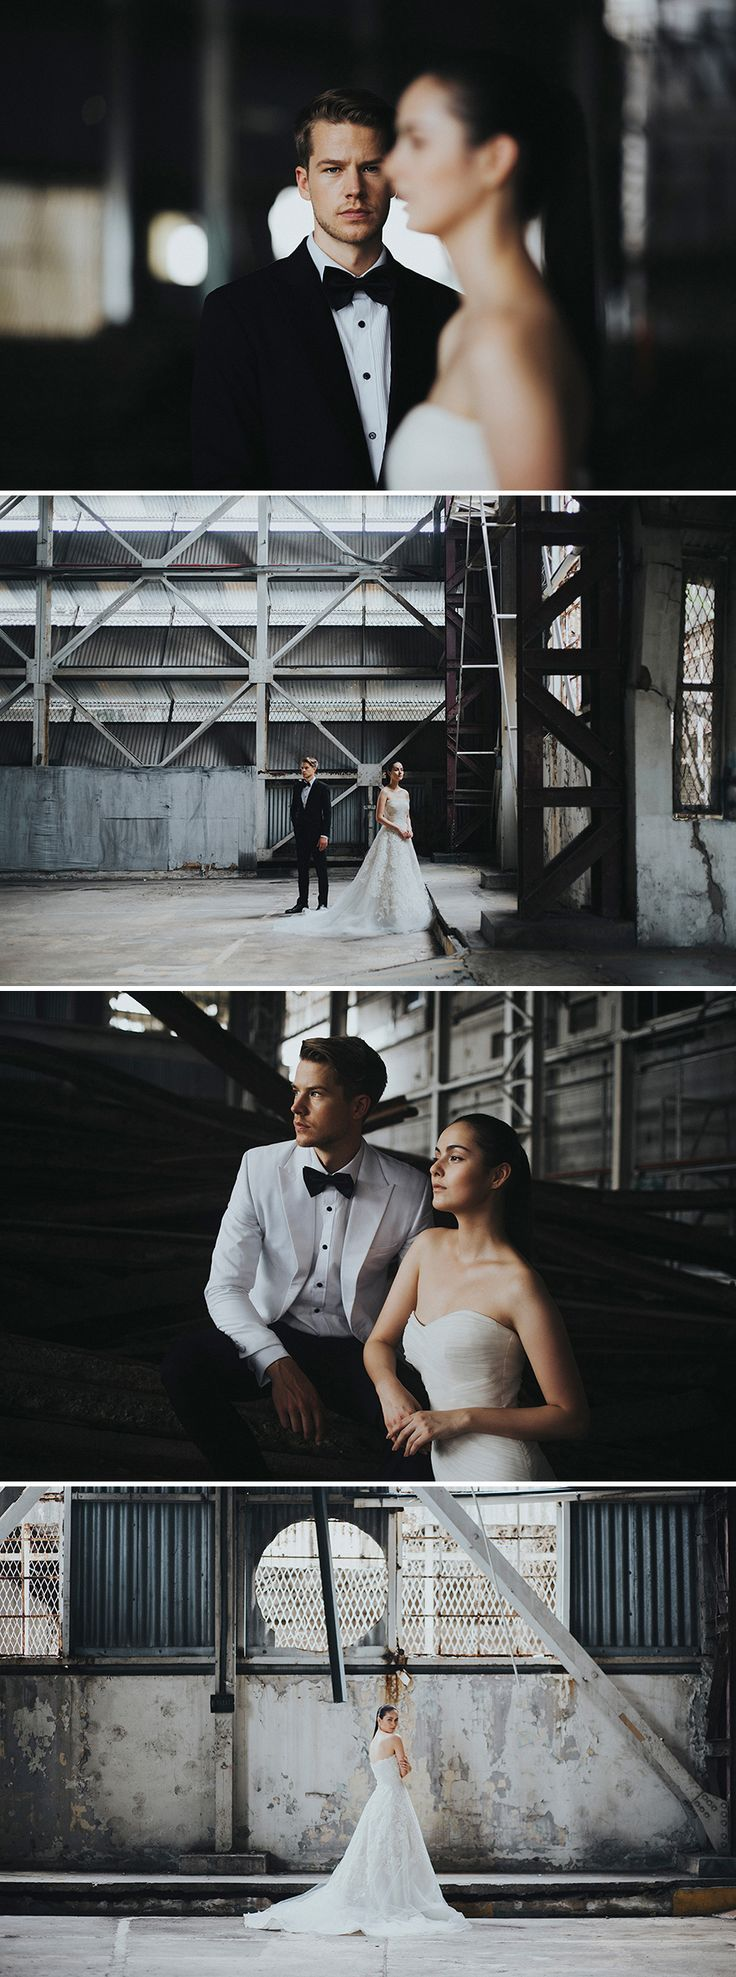 Beautiful poses against aged buildings for a more rustic feel // Gazetted for conservation, the former Kallang Airport was Singapore's first commercial international airport, touted as one of the most modern airports of its time. Its rich history was the perfect complement to the moody industrial vibes that the airport contributed to this styled shoot with AndroidsinBoots, The Proposal Bridal, Wong Hang Distinguished Tailor and The Make Up Room.